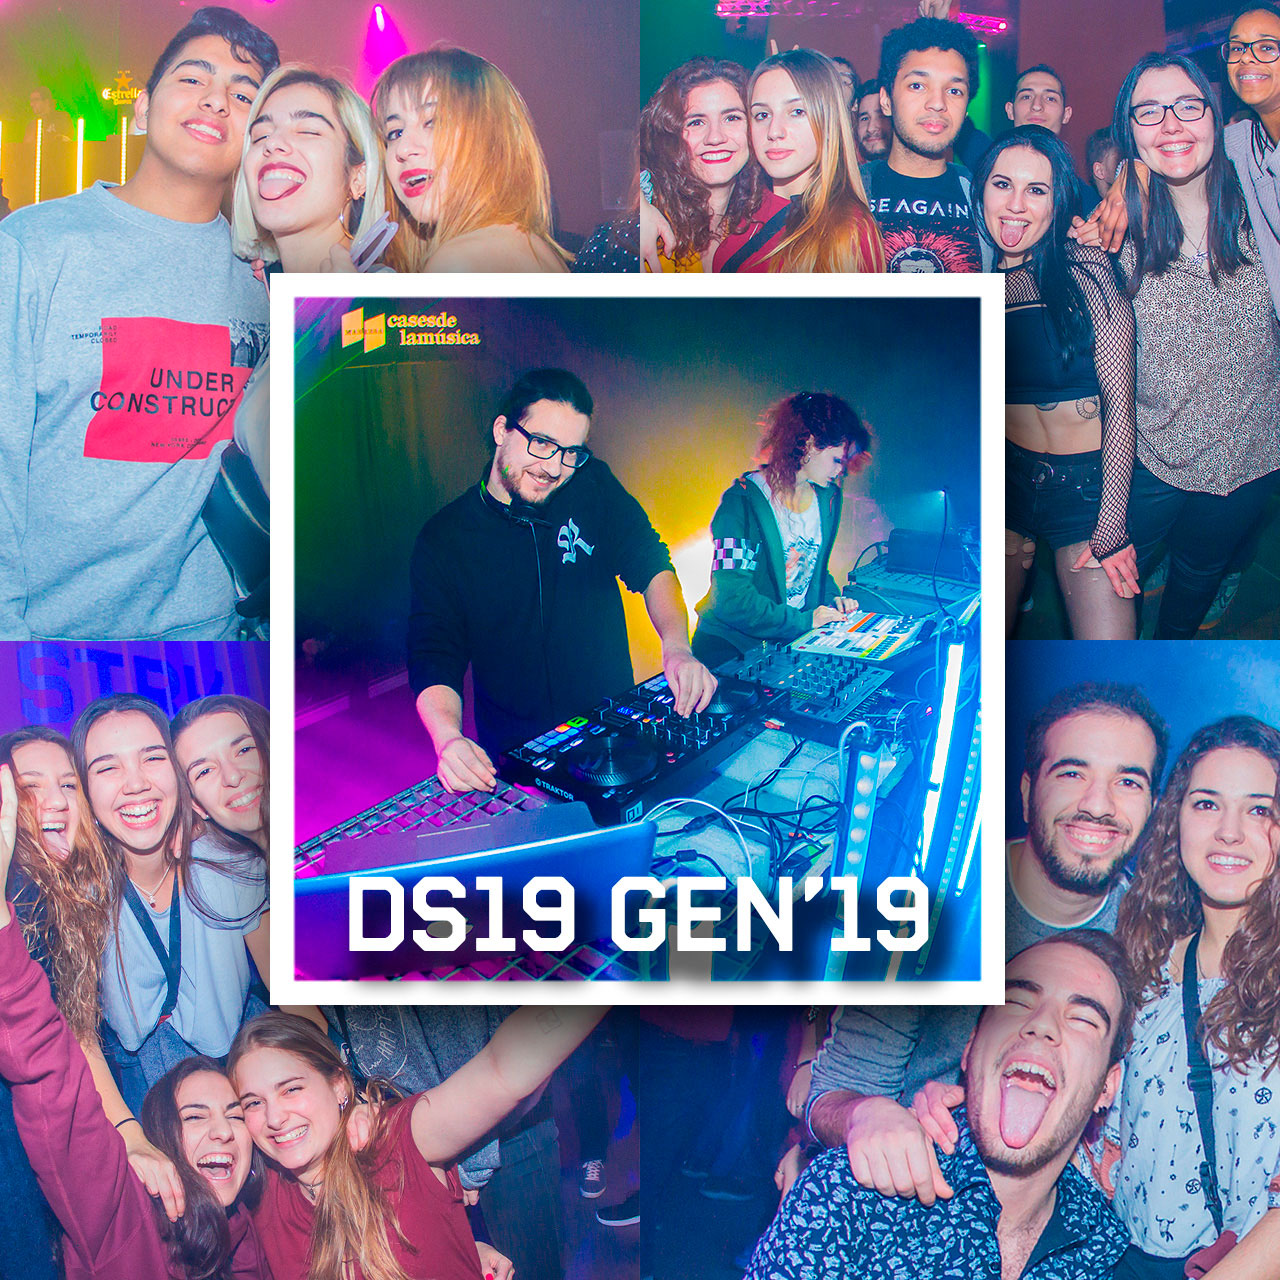 DS19 GEN'19 // STROIKA SESSIONS